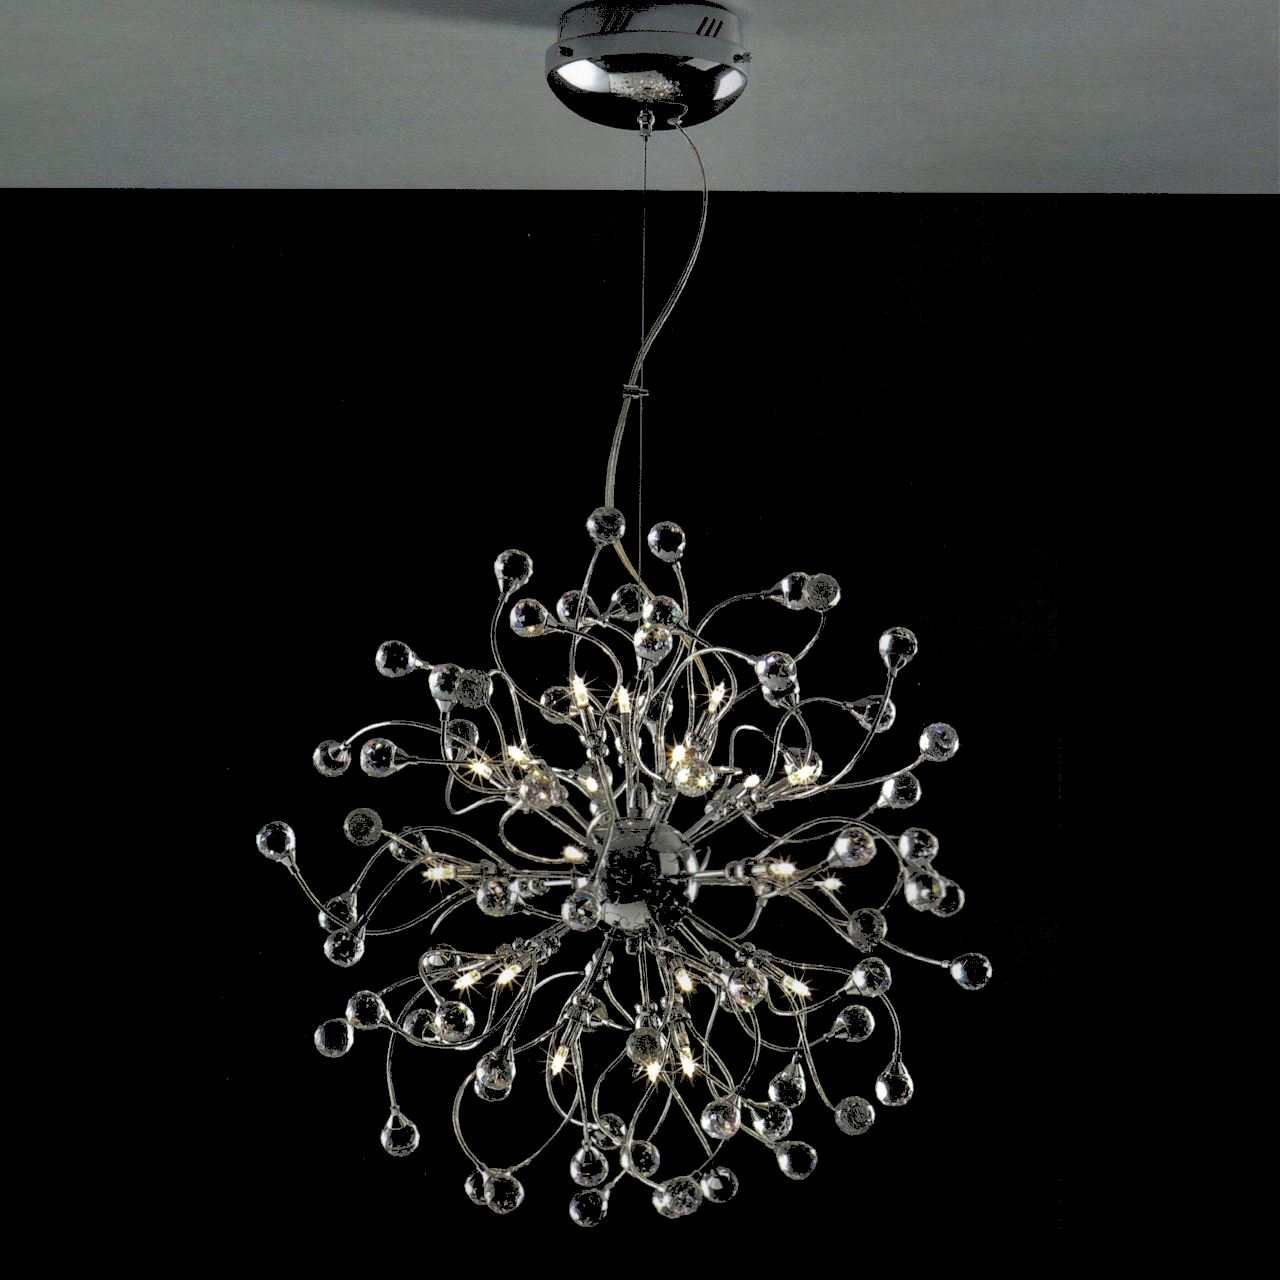 Brizzo Lighting Stores 24 Sfera Modern Crystal Round